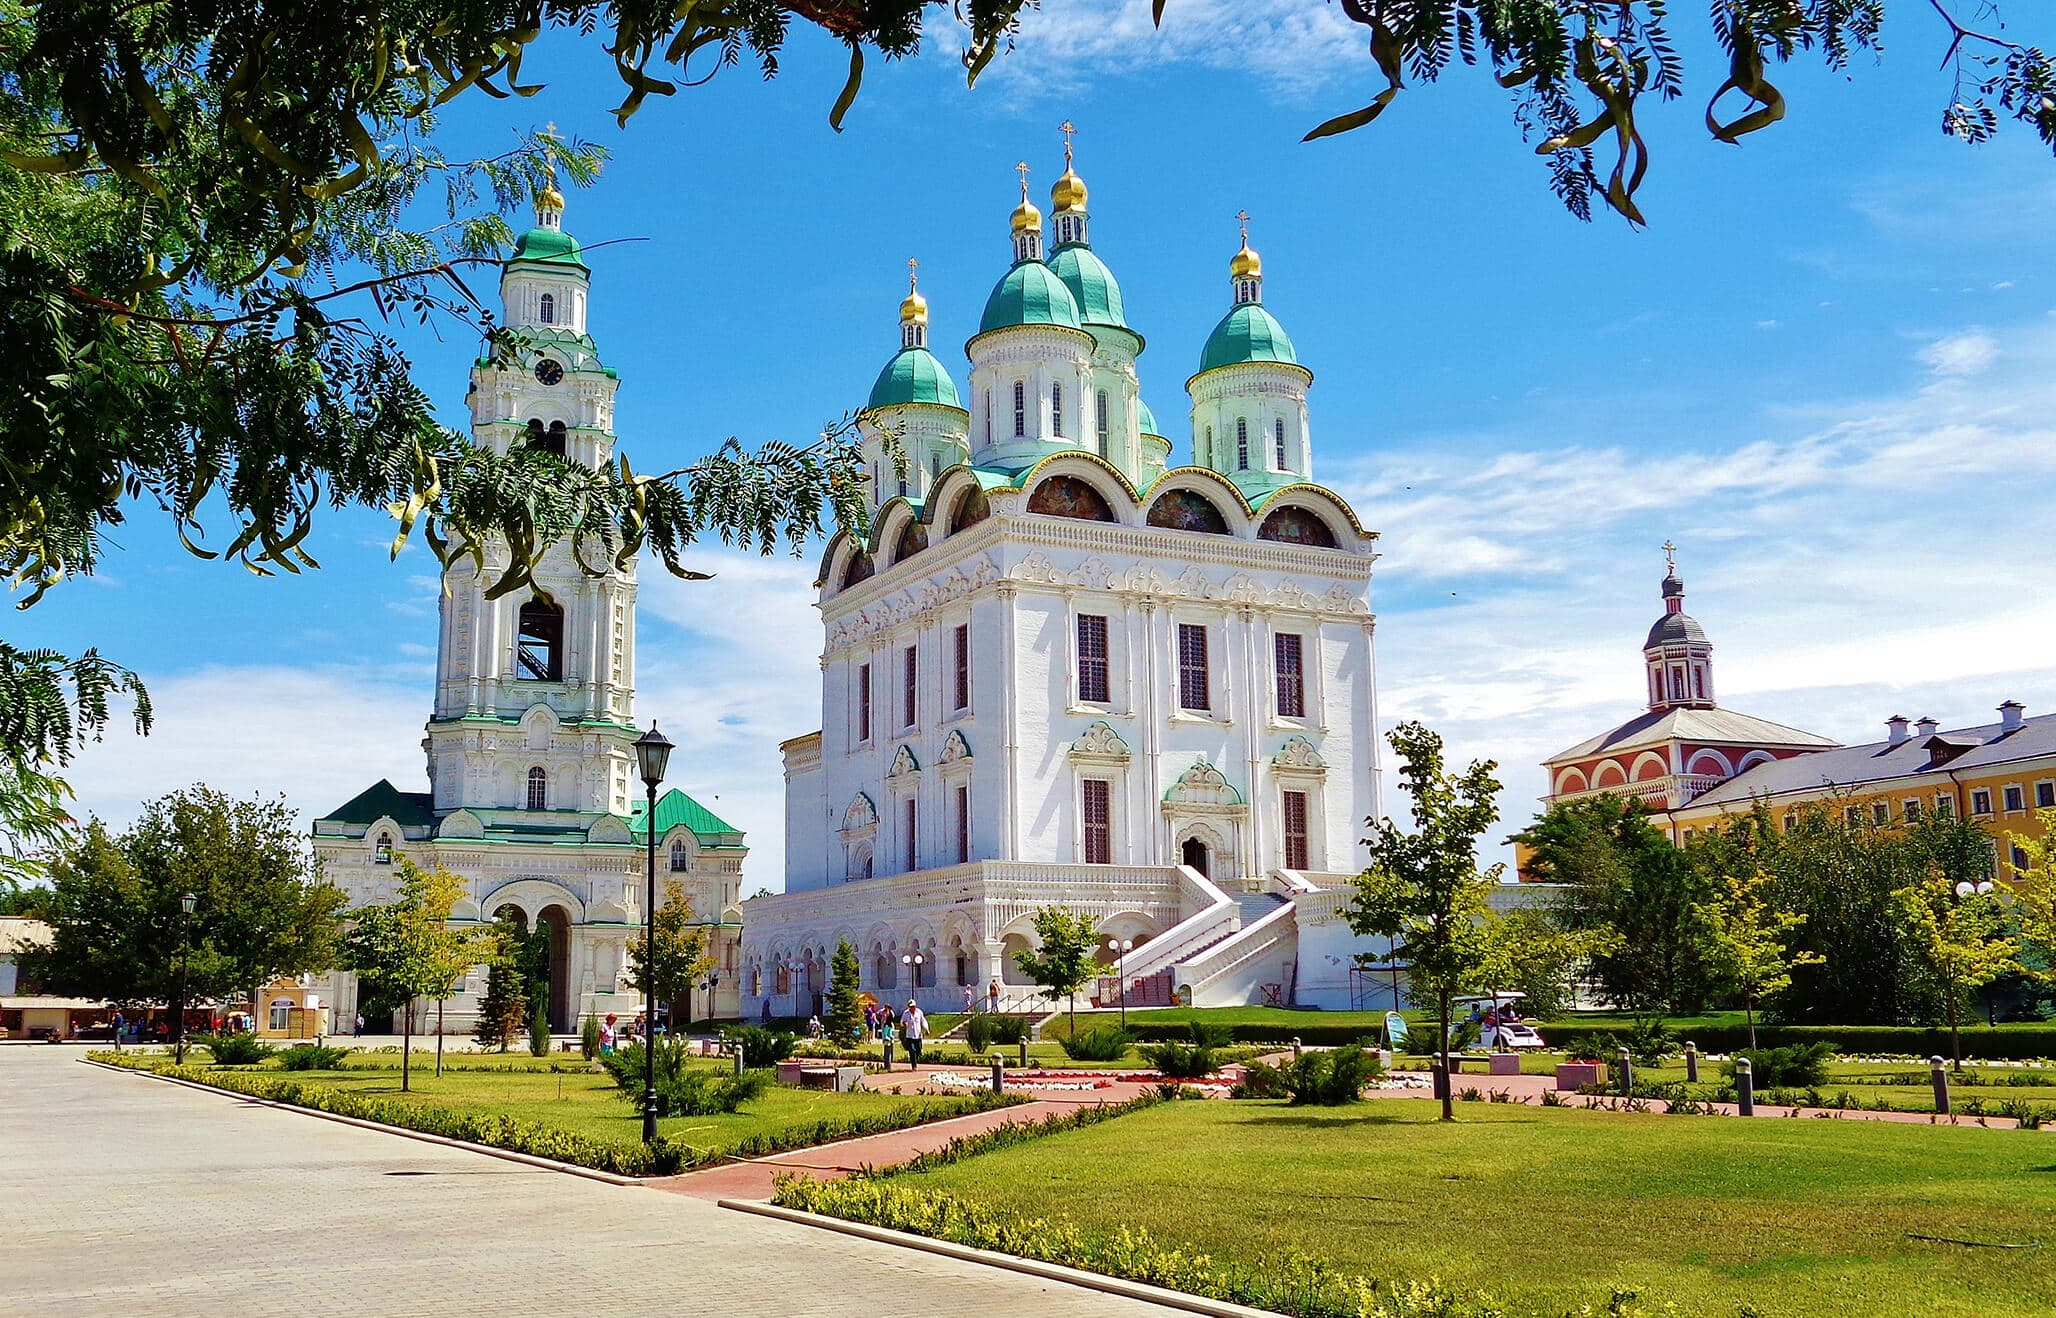 Astrakhan, Russia - One of the most underrated cities in the world + why you should add it to your bucket list low!